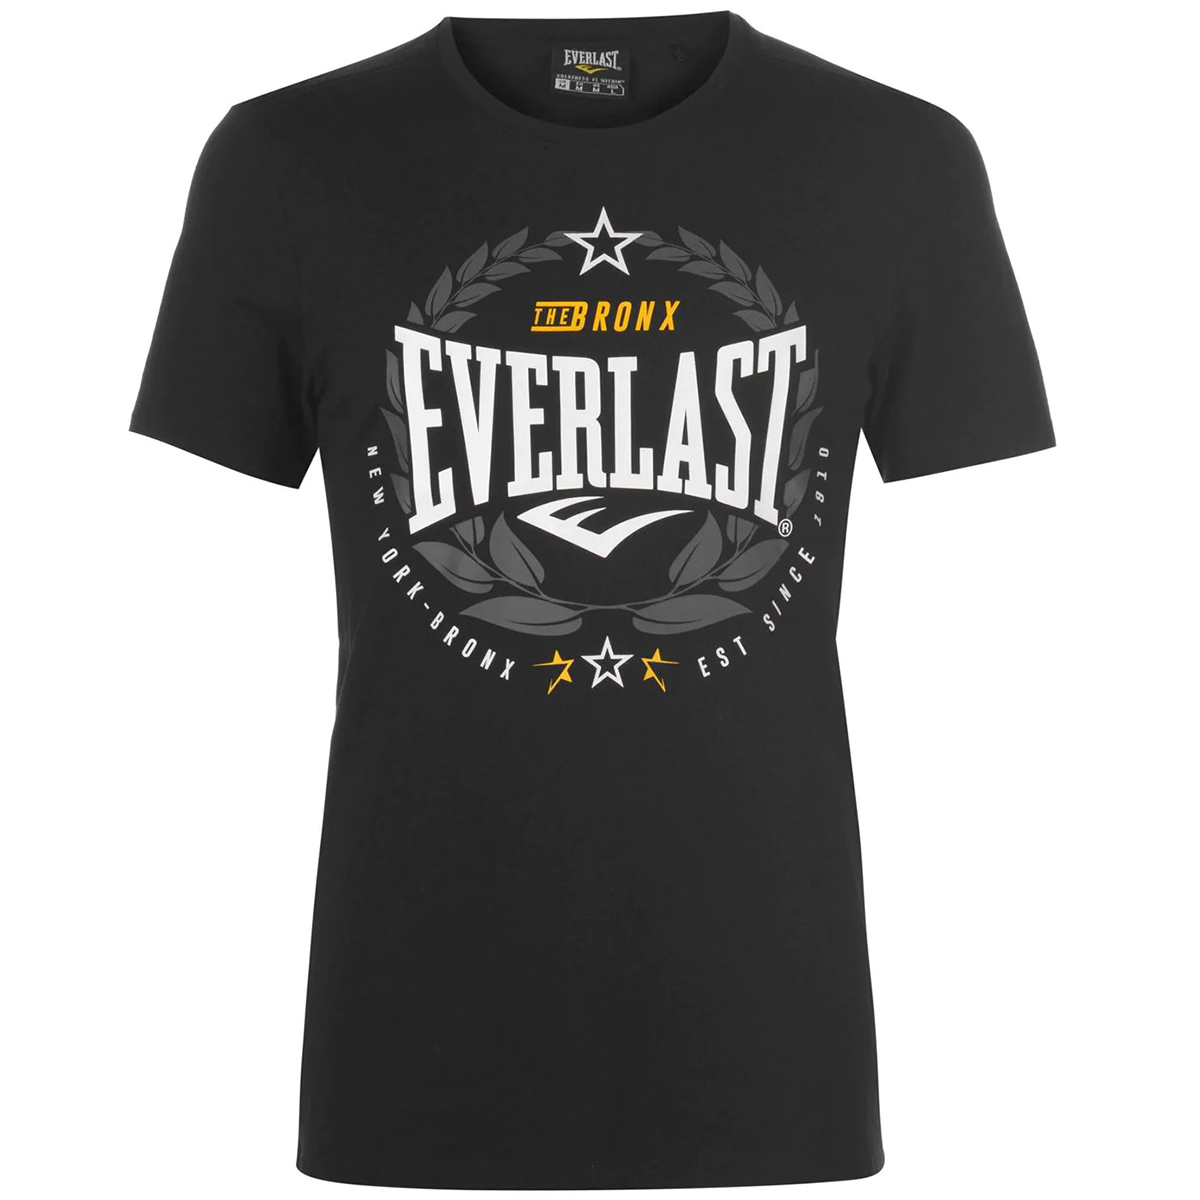 Everlast Men's Laurel Short-Sleeve Tee - Black, XS